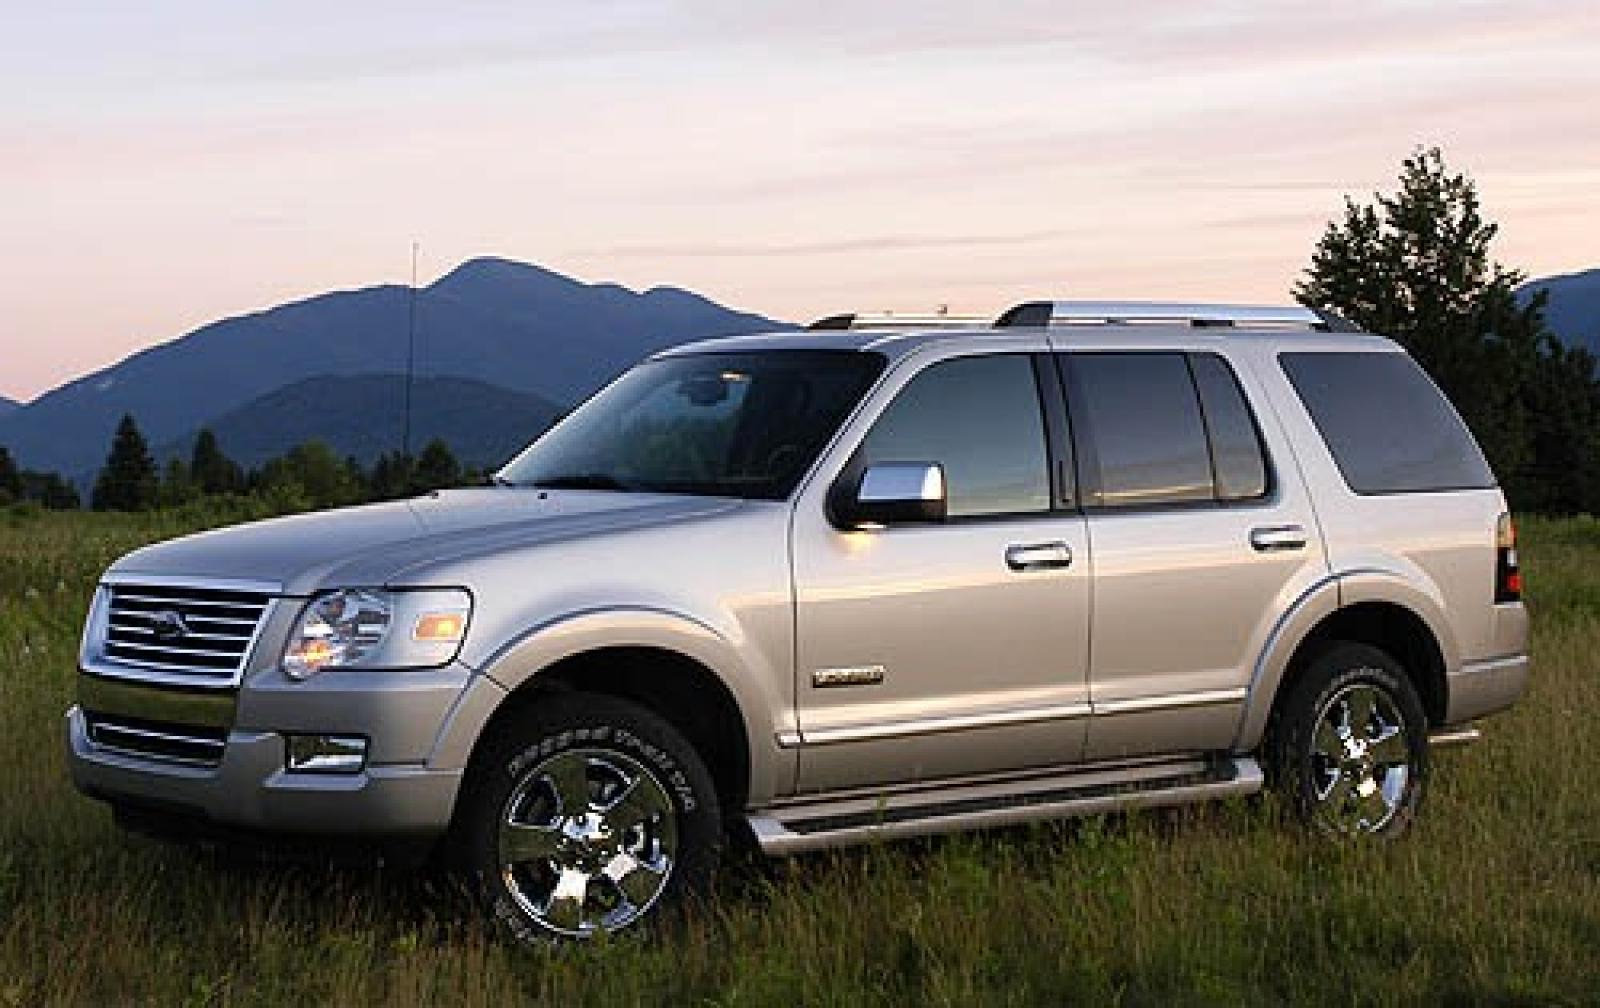 2007 ford explorer information and photos zombiedrive. Black Bedroom Furniture Sets. Home Design Ideas